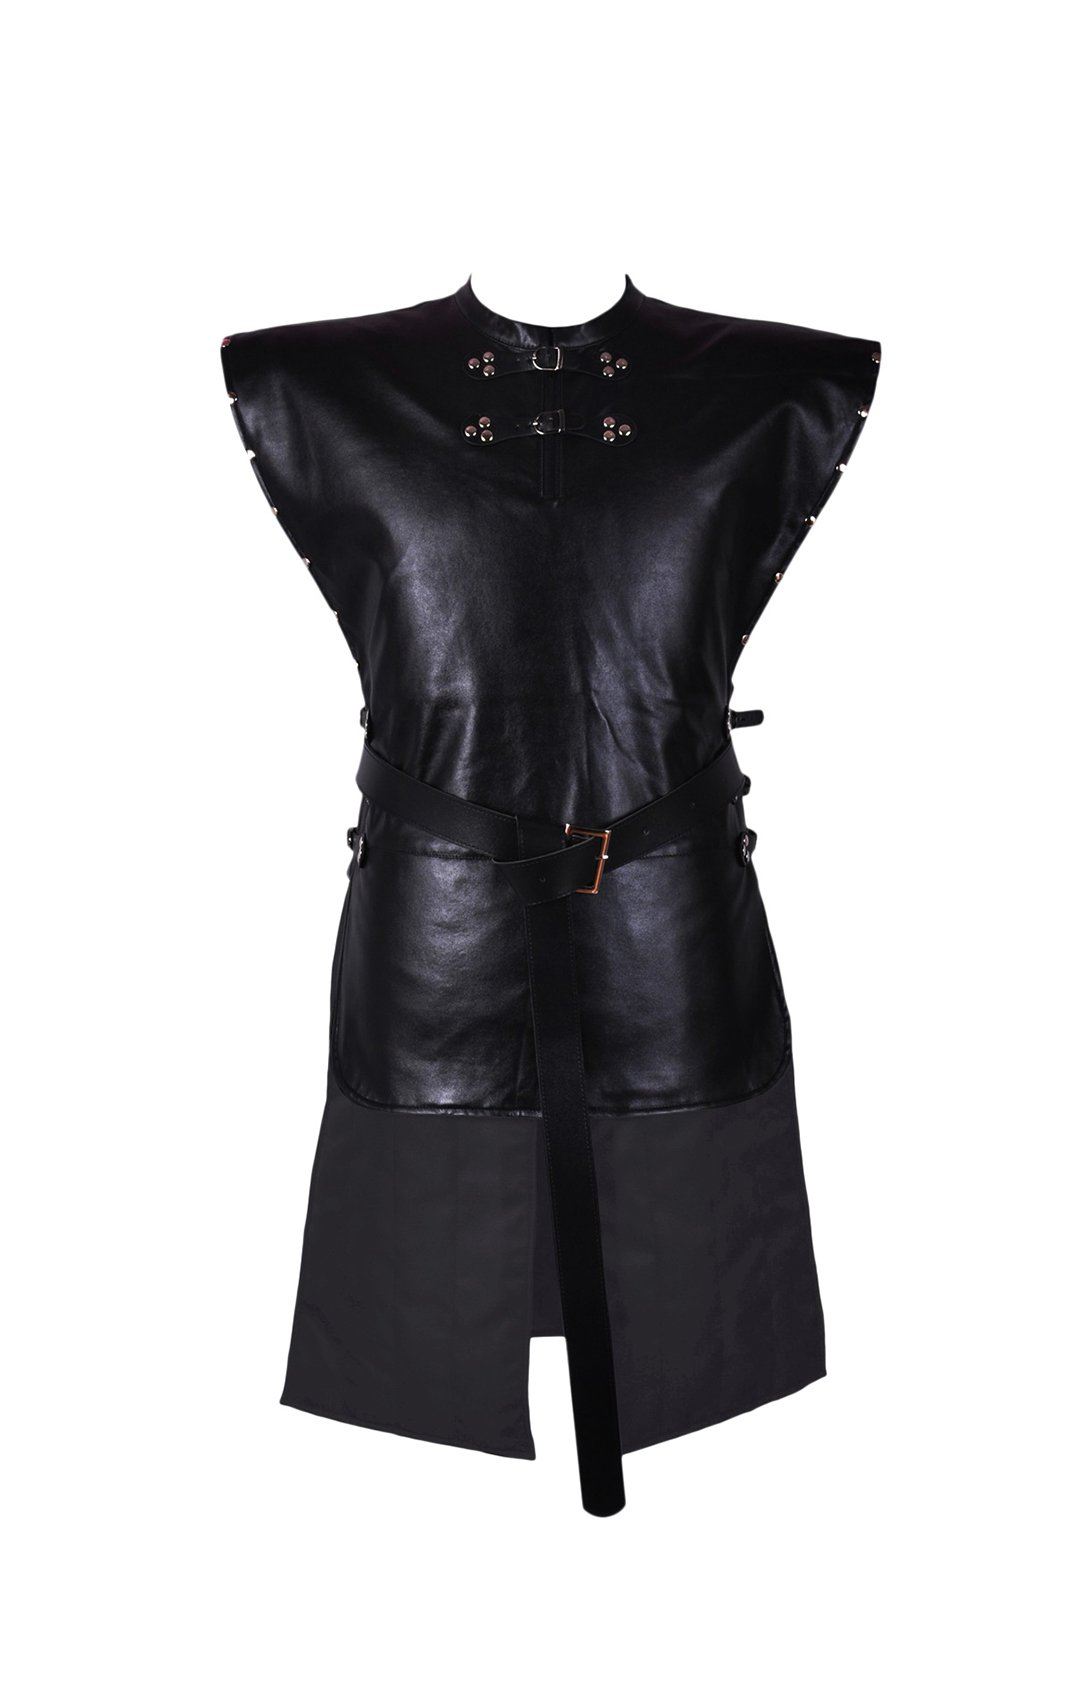 Crystal Dew Jon Snow Knights Watch Cosplay Costume for Man and Child by Crystal Dew (Image #2)